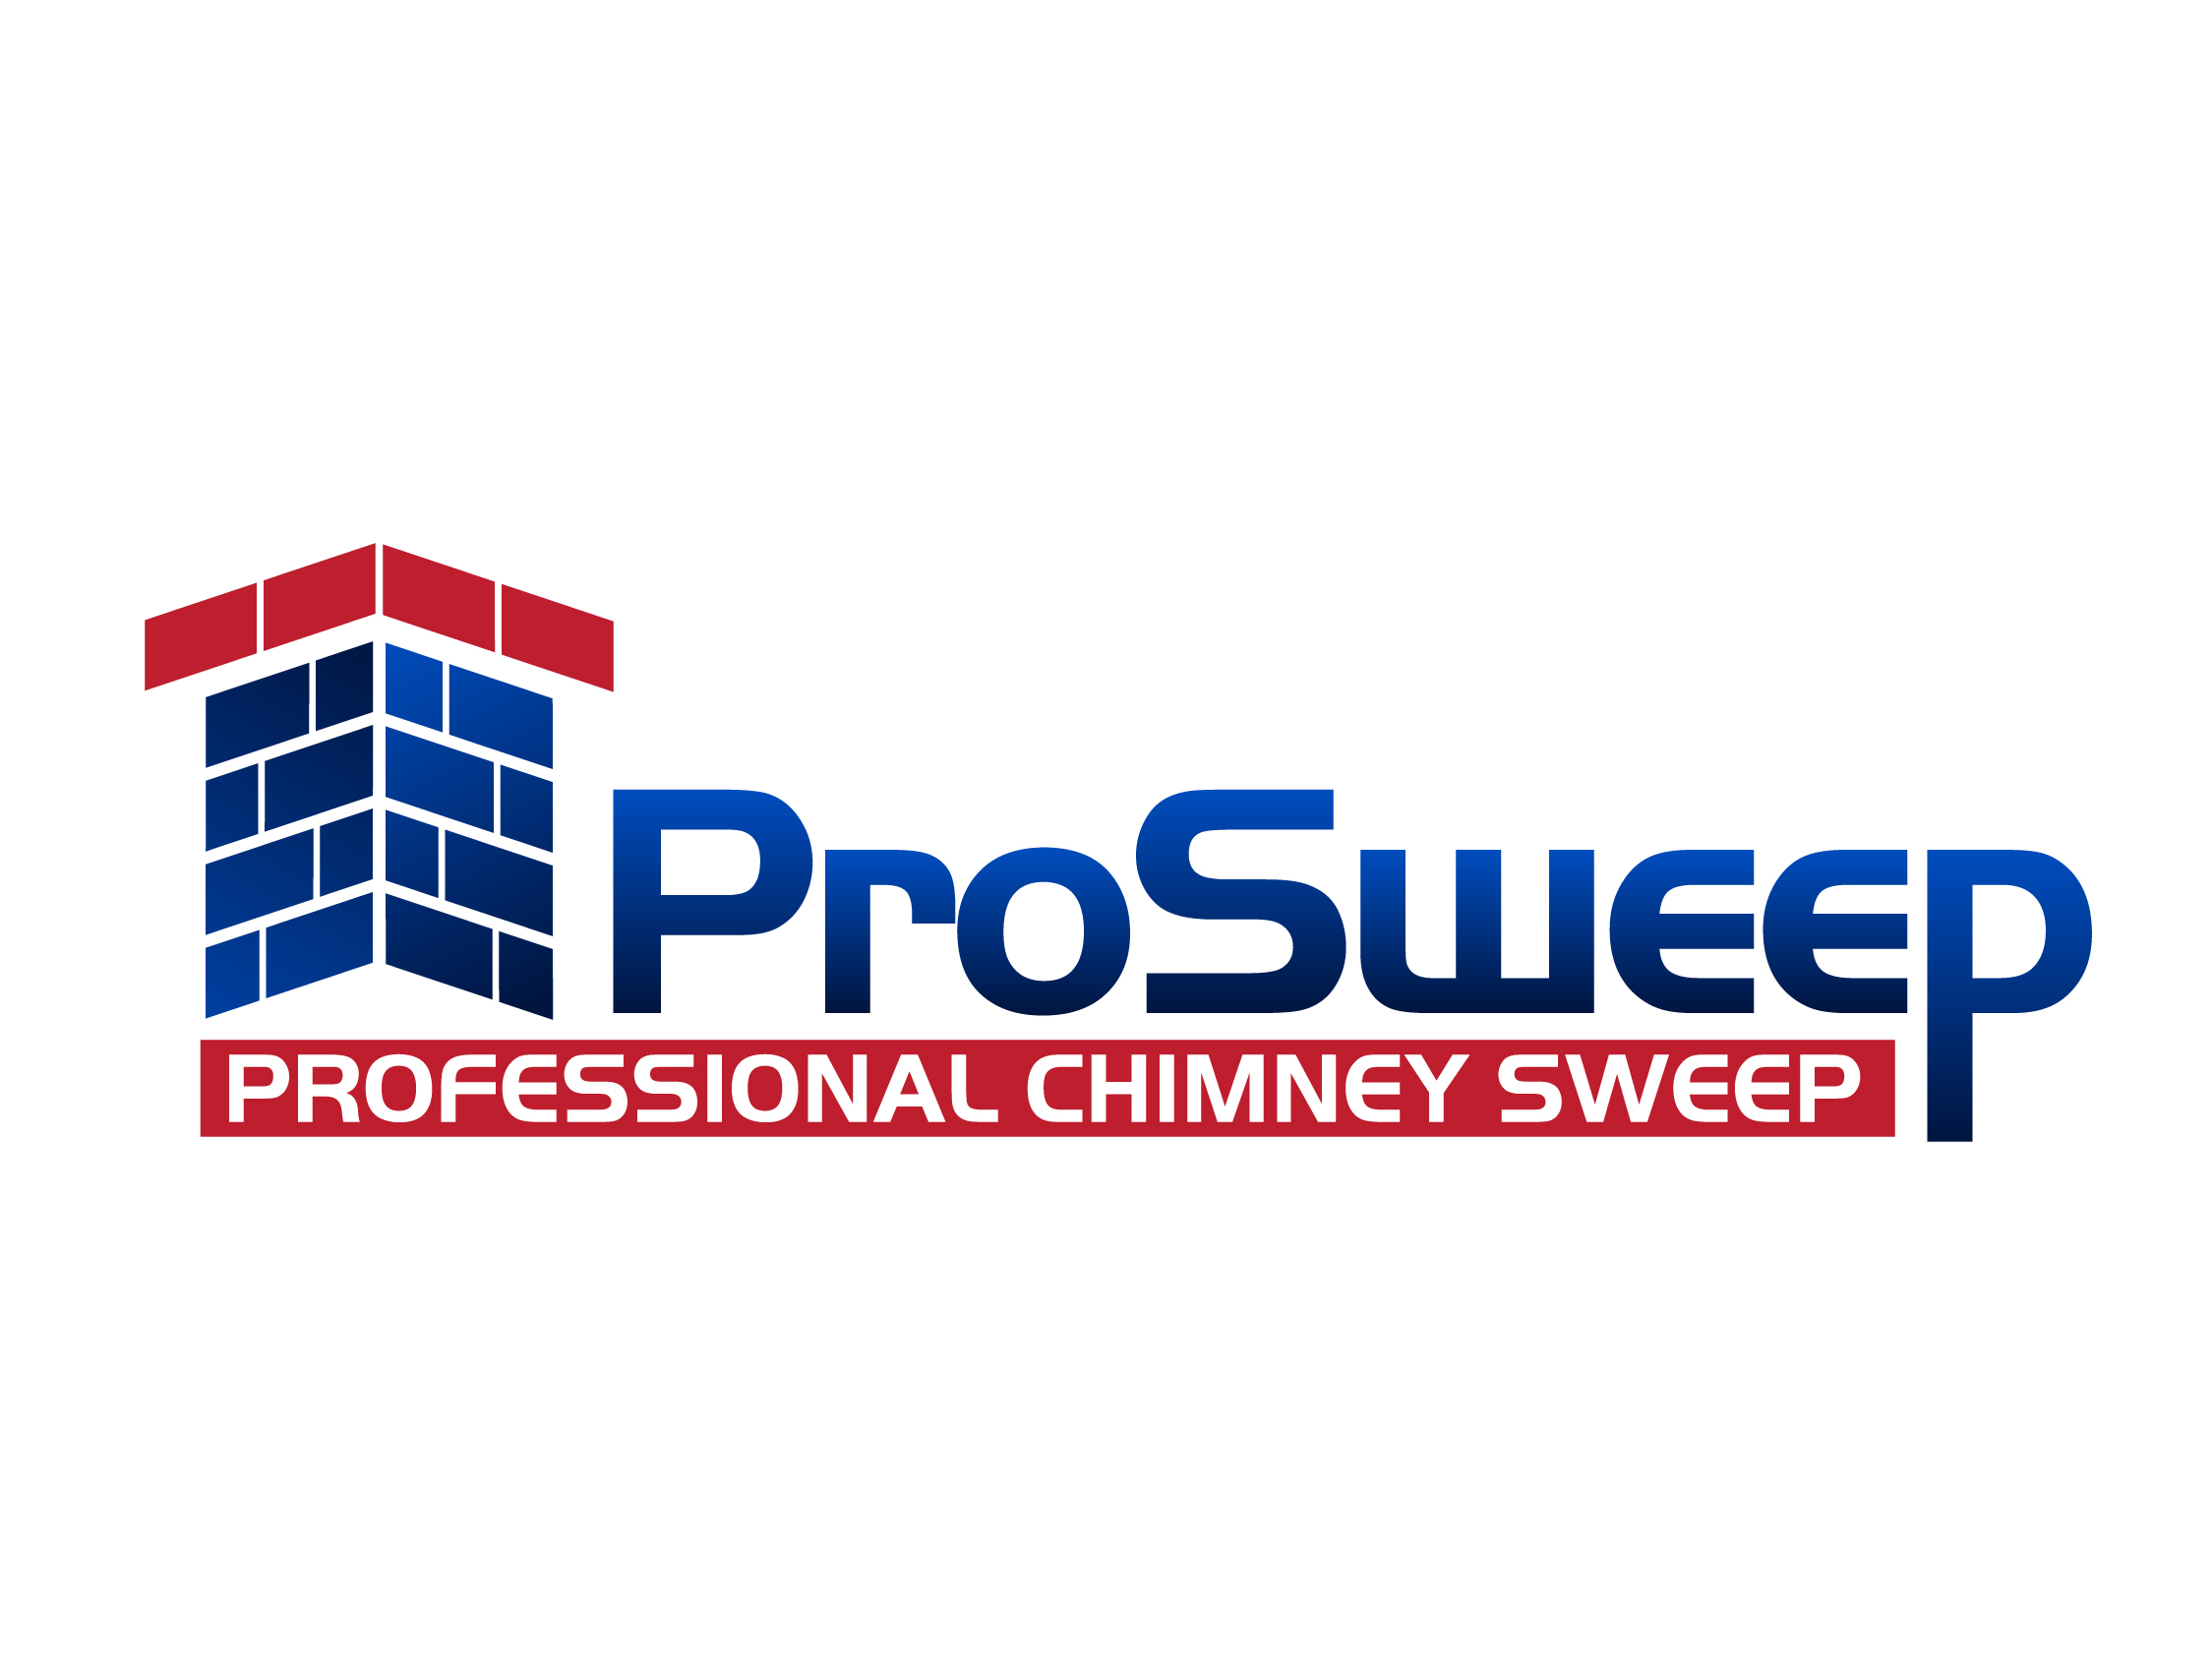 ProSweep Professional Chimney Sweep logo